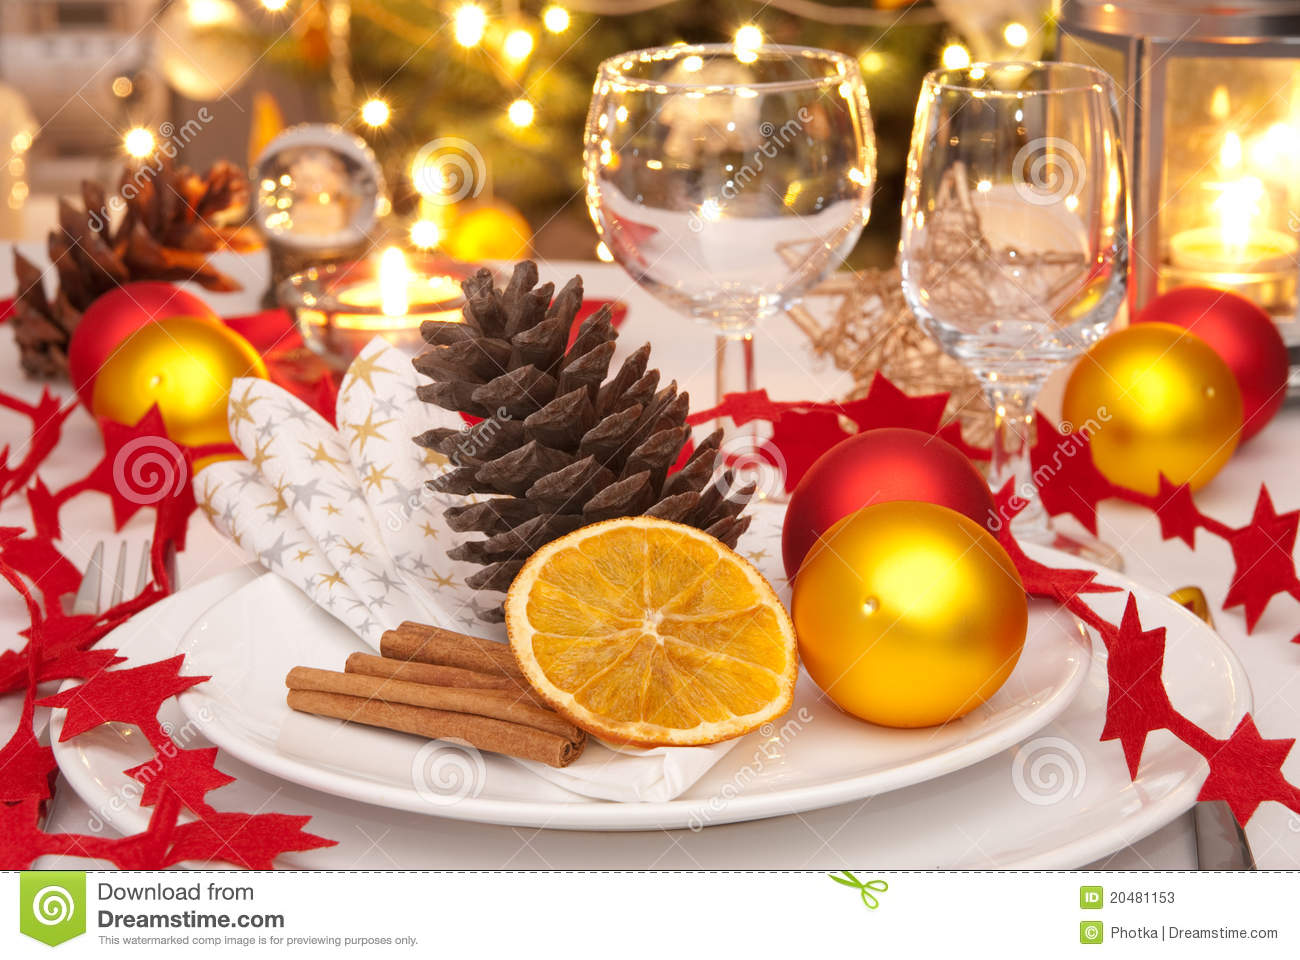 Christmas Table Stock Photos Image 20481153